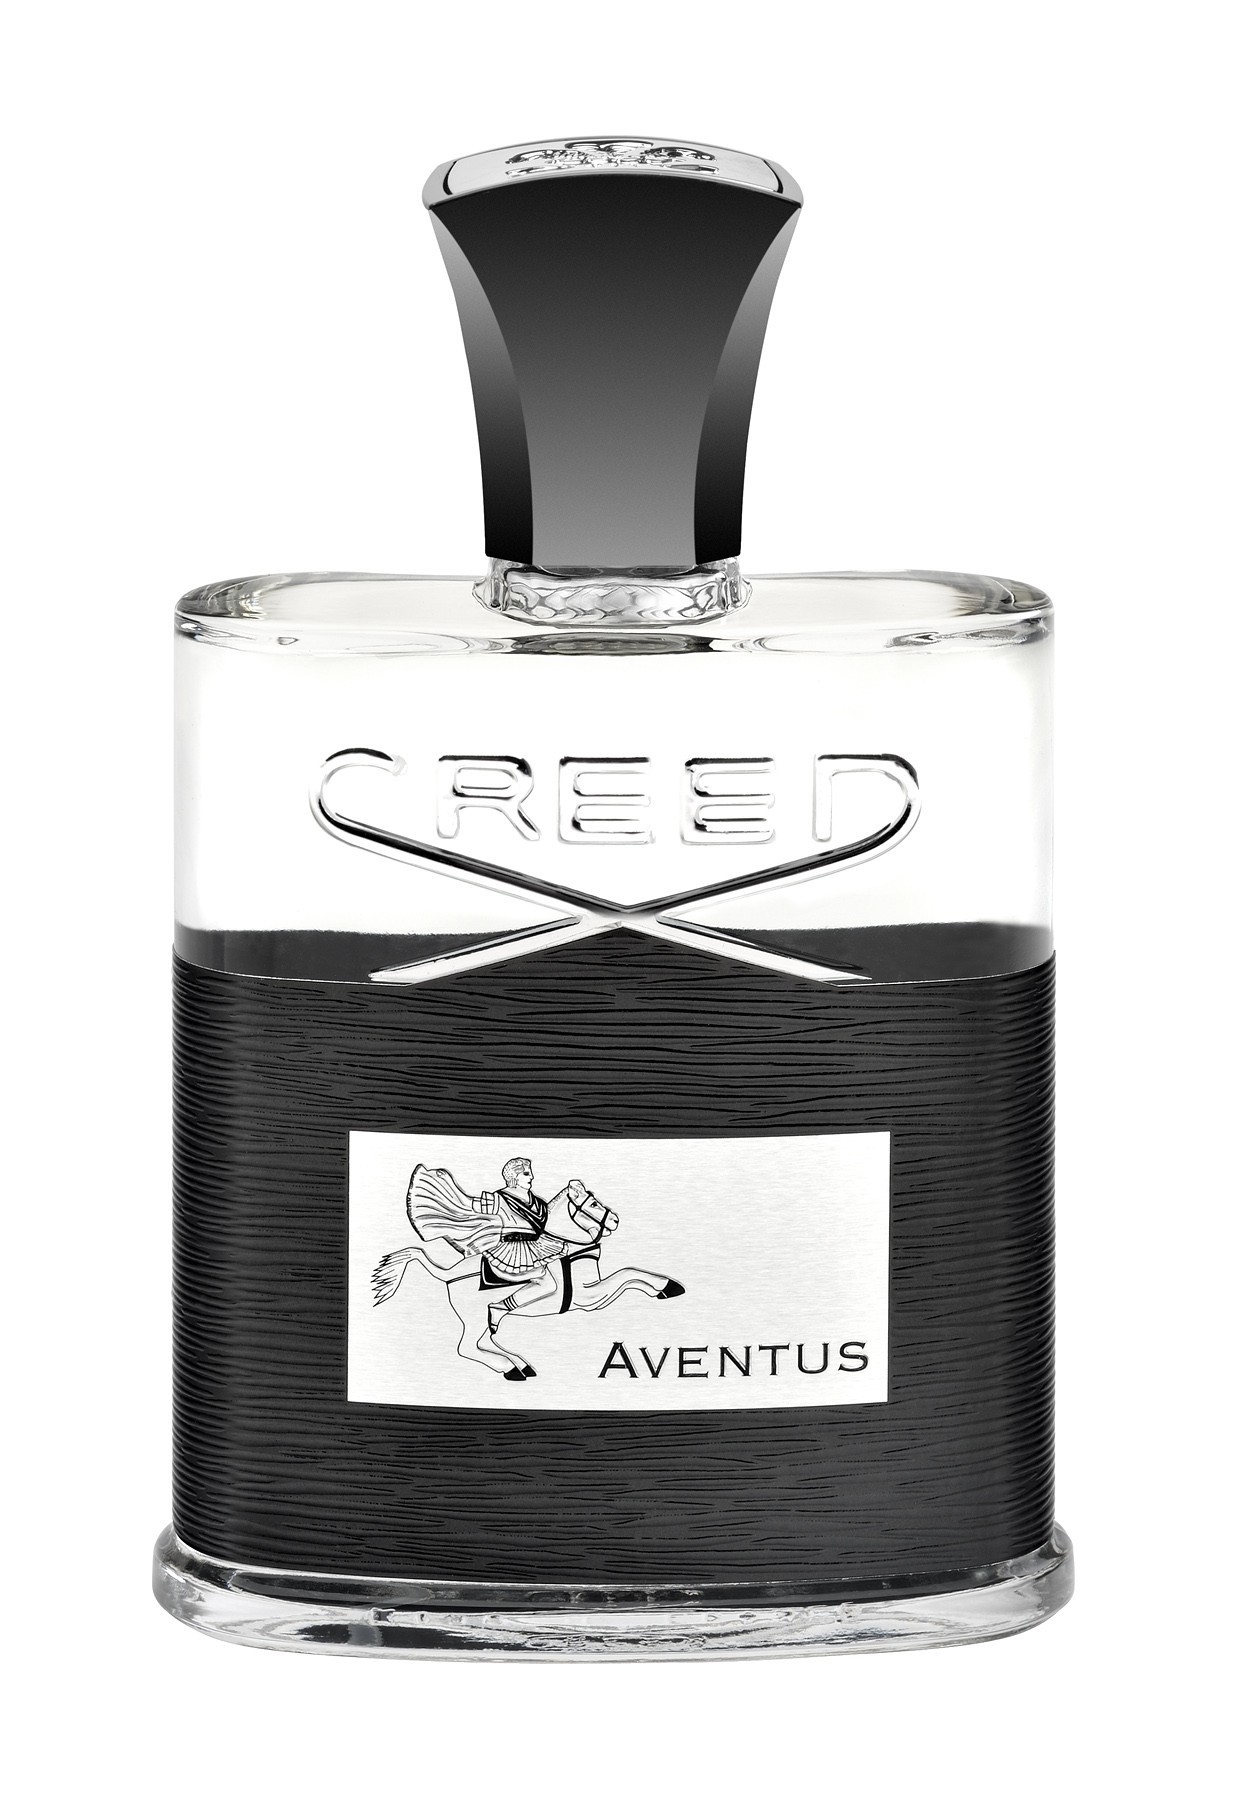 creed-aventus-cologne-review